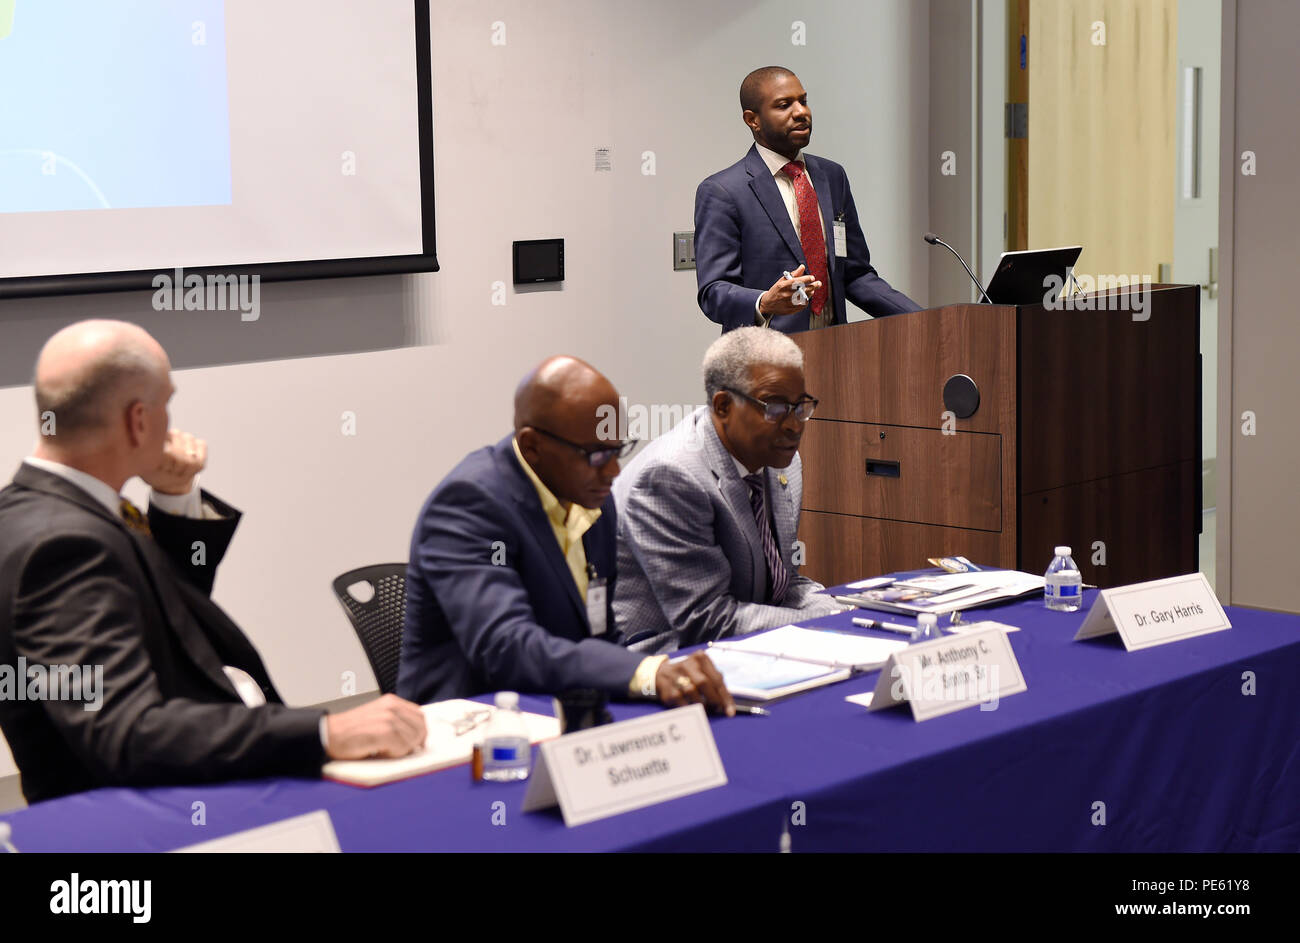 151006-N-PO203-033 WASHINGTON  (Oct. 6, 2015) Dr. Ivory Toldson, acting director, White House Initiative on Historically Black Colleges and Universities (HBCU), offers remarks during the Department of the Navy's HBCU and Minority Institution program Opportunity Awareness Workshop held at Howard University in Washington, D.C. The purpose of the workshop is to make faculty and students aware of internships, scholarships and other funding opportunities through the Navy and the Office of Naval Research. (U.S. Navy photo by John F. Williams/Released) - Stock Image